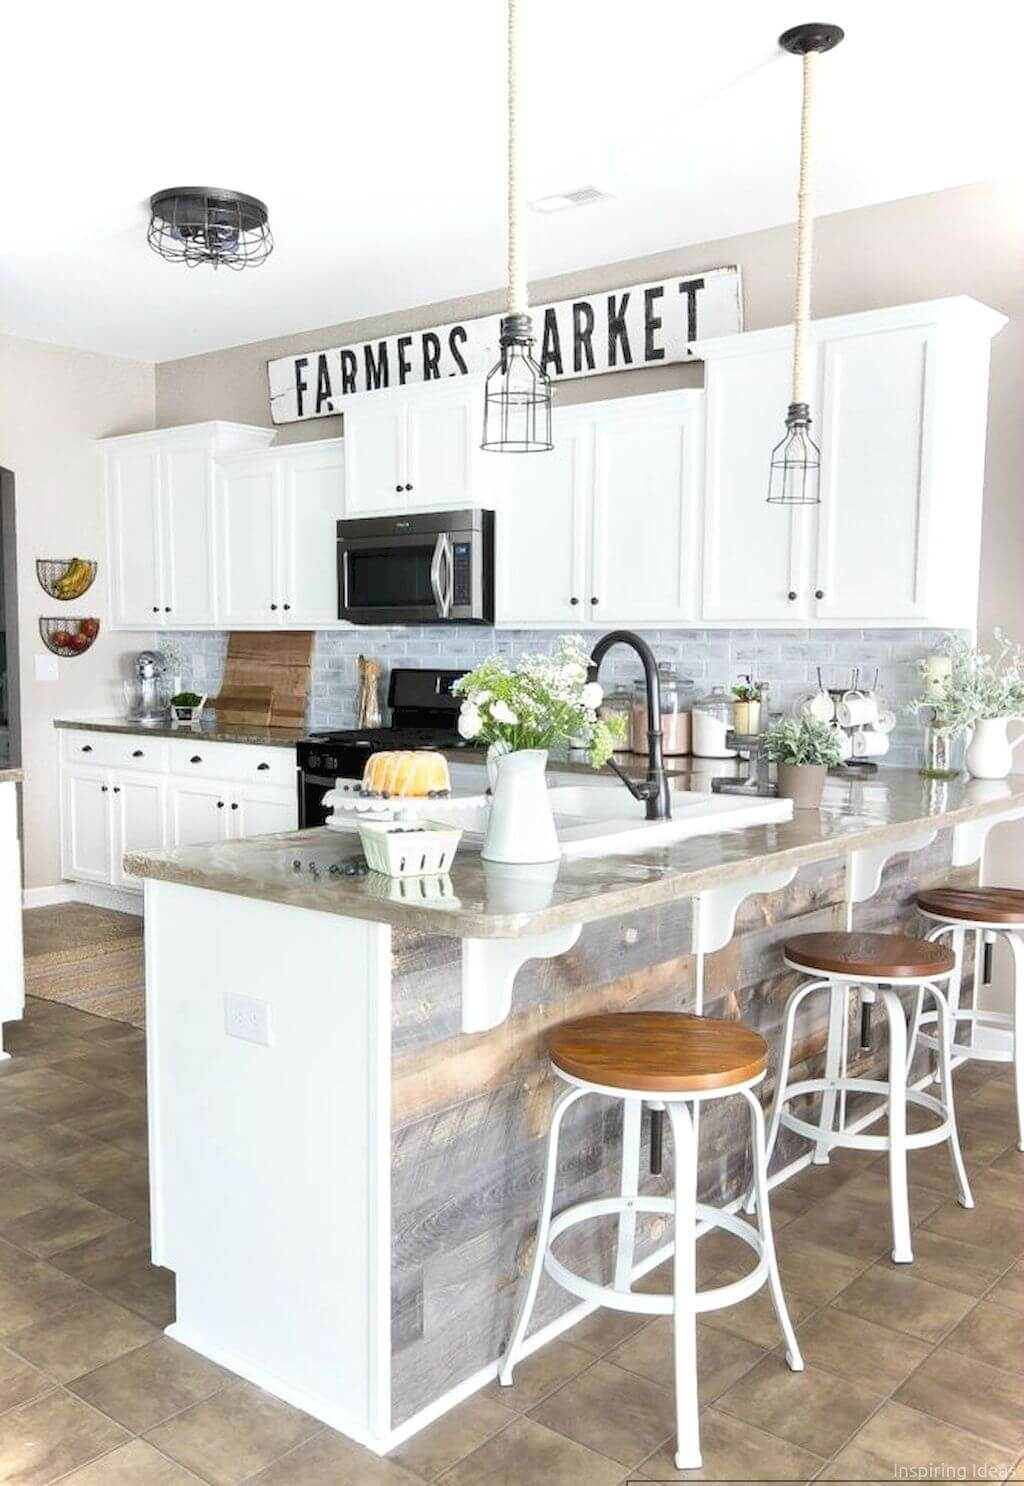 Grayscale and White Cabinets with Black Accents  sc 1 st  Homebnc & 35 Best Farmhouse Kitchen Cabinet Ideas and Designs for 2018